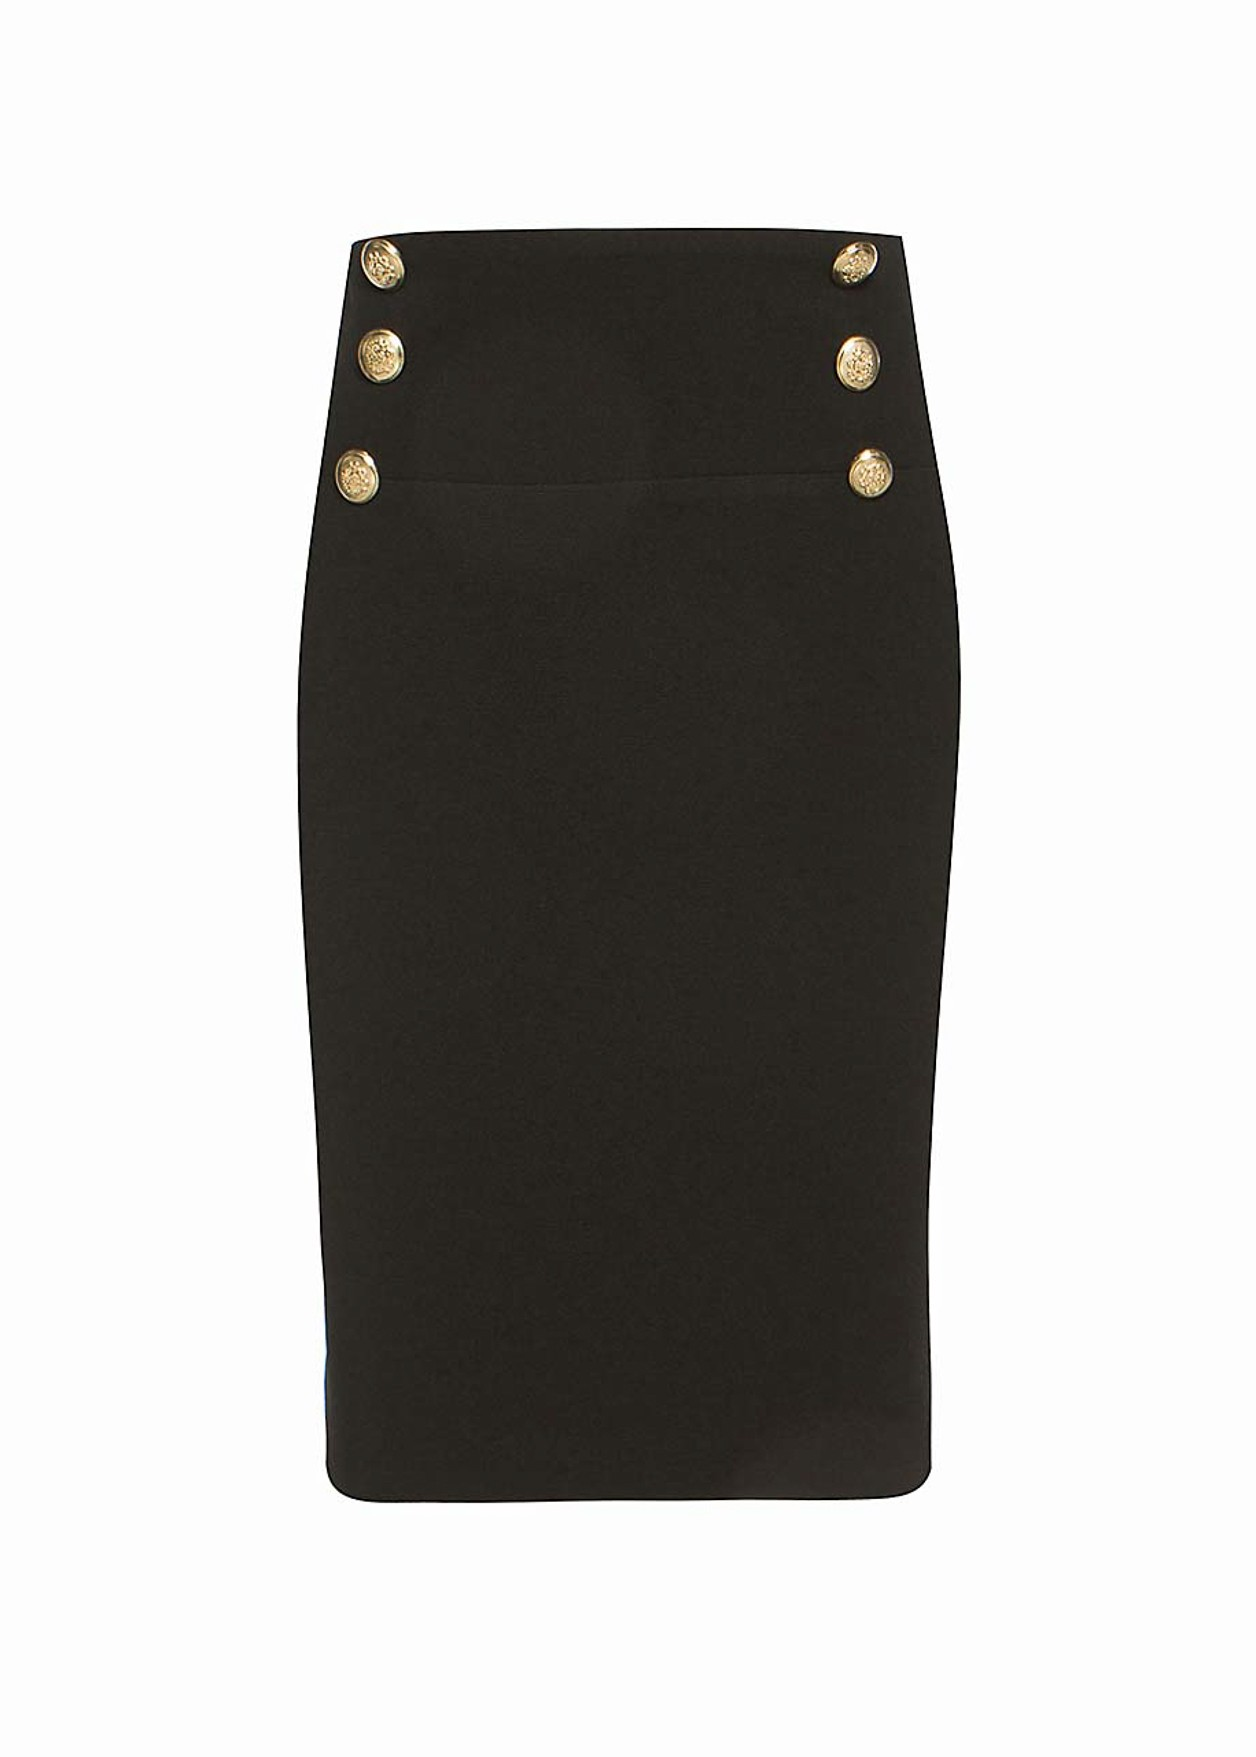 Skirt with decorative buttons